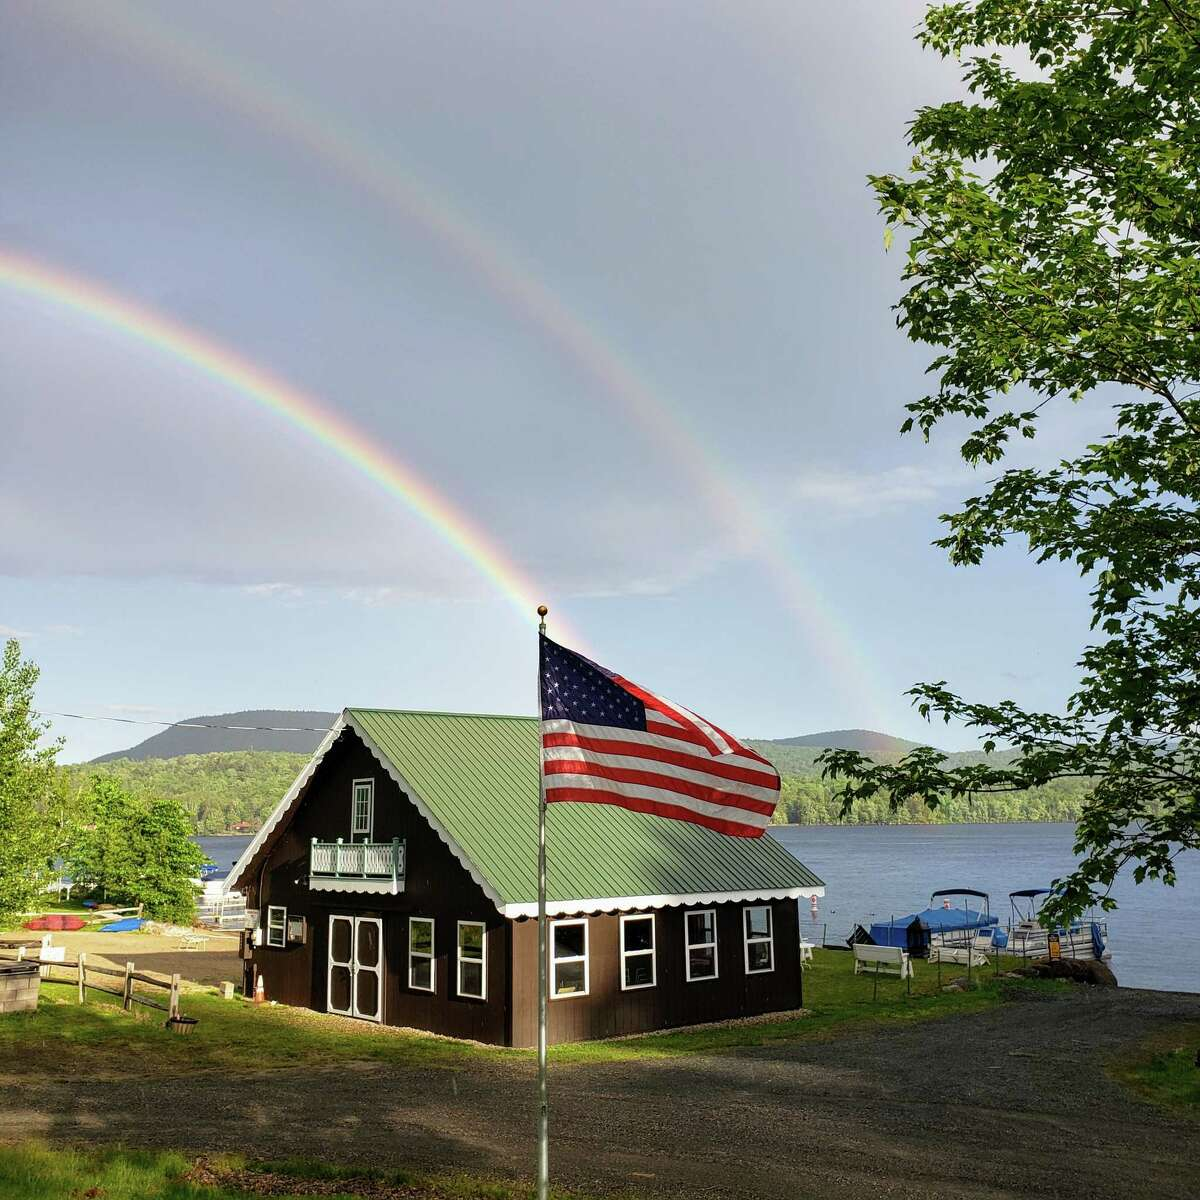 This photo was taken June 6 at Clifton Park resident Patricia Karwatowskia€™s camp at Lake Pleasant park in Speculator. a€œThe building is our community barn and the flag was my dada€™s. The double rainbow after a sprinkle was spectacular!a€